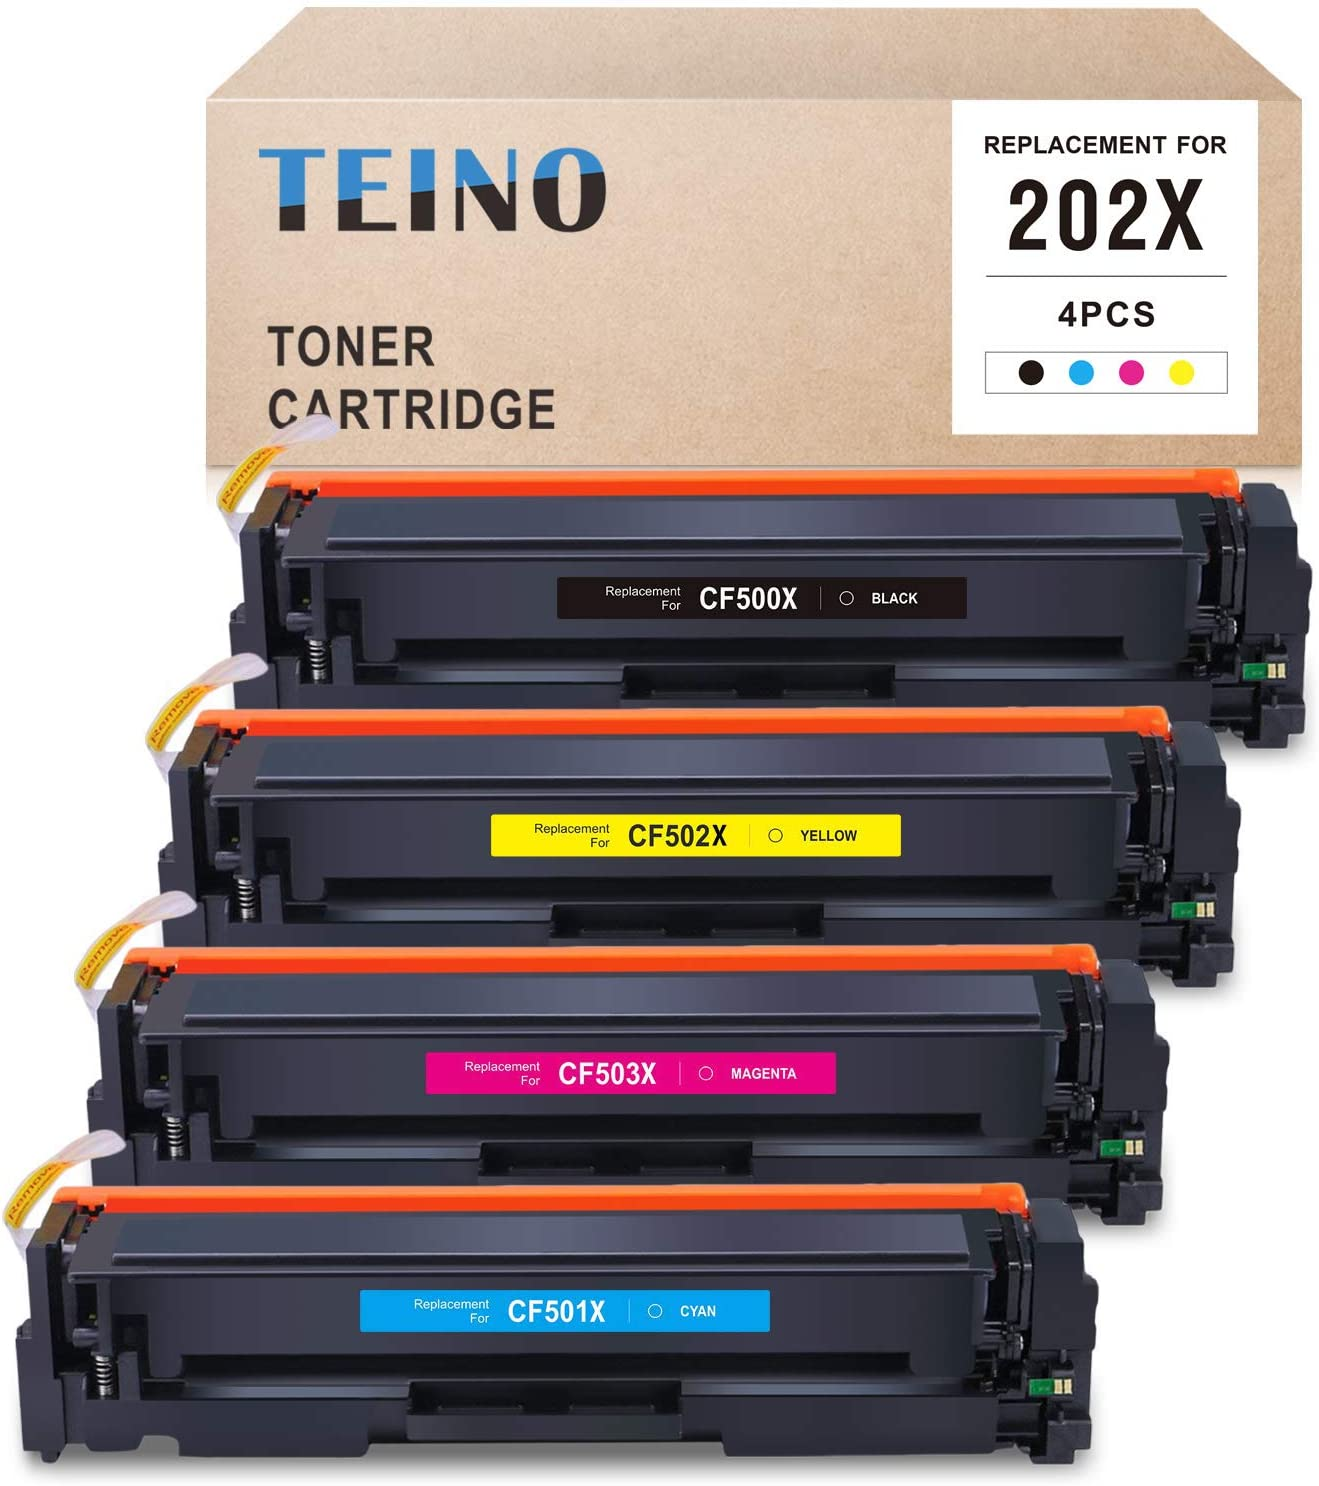 TEINO Compatible Toner Cartridge Replacement for HP 202X CF500X 202A CF500A for Color Laserjet Pro MFP M281fdw M281cdw M280nw Color Laserjet Pro M254dw (Black, Cyan, Magenta, Yellow, 4 Pack)